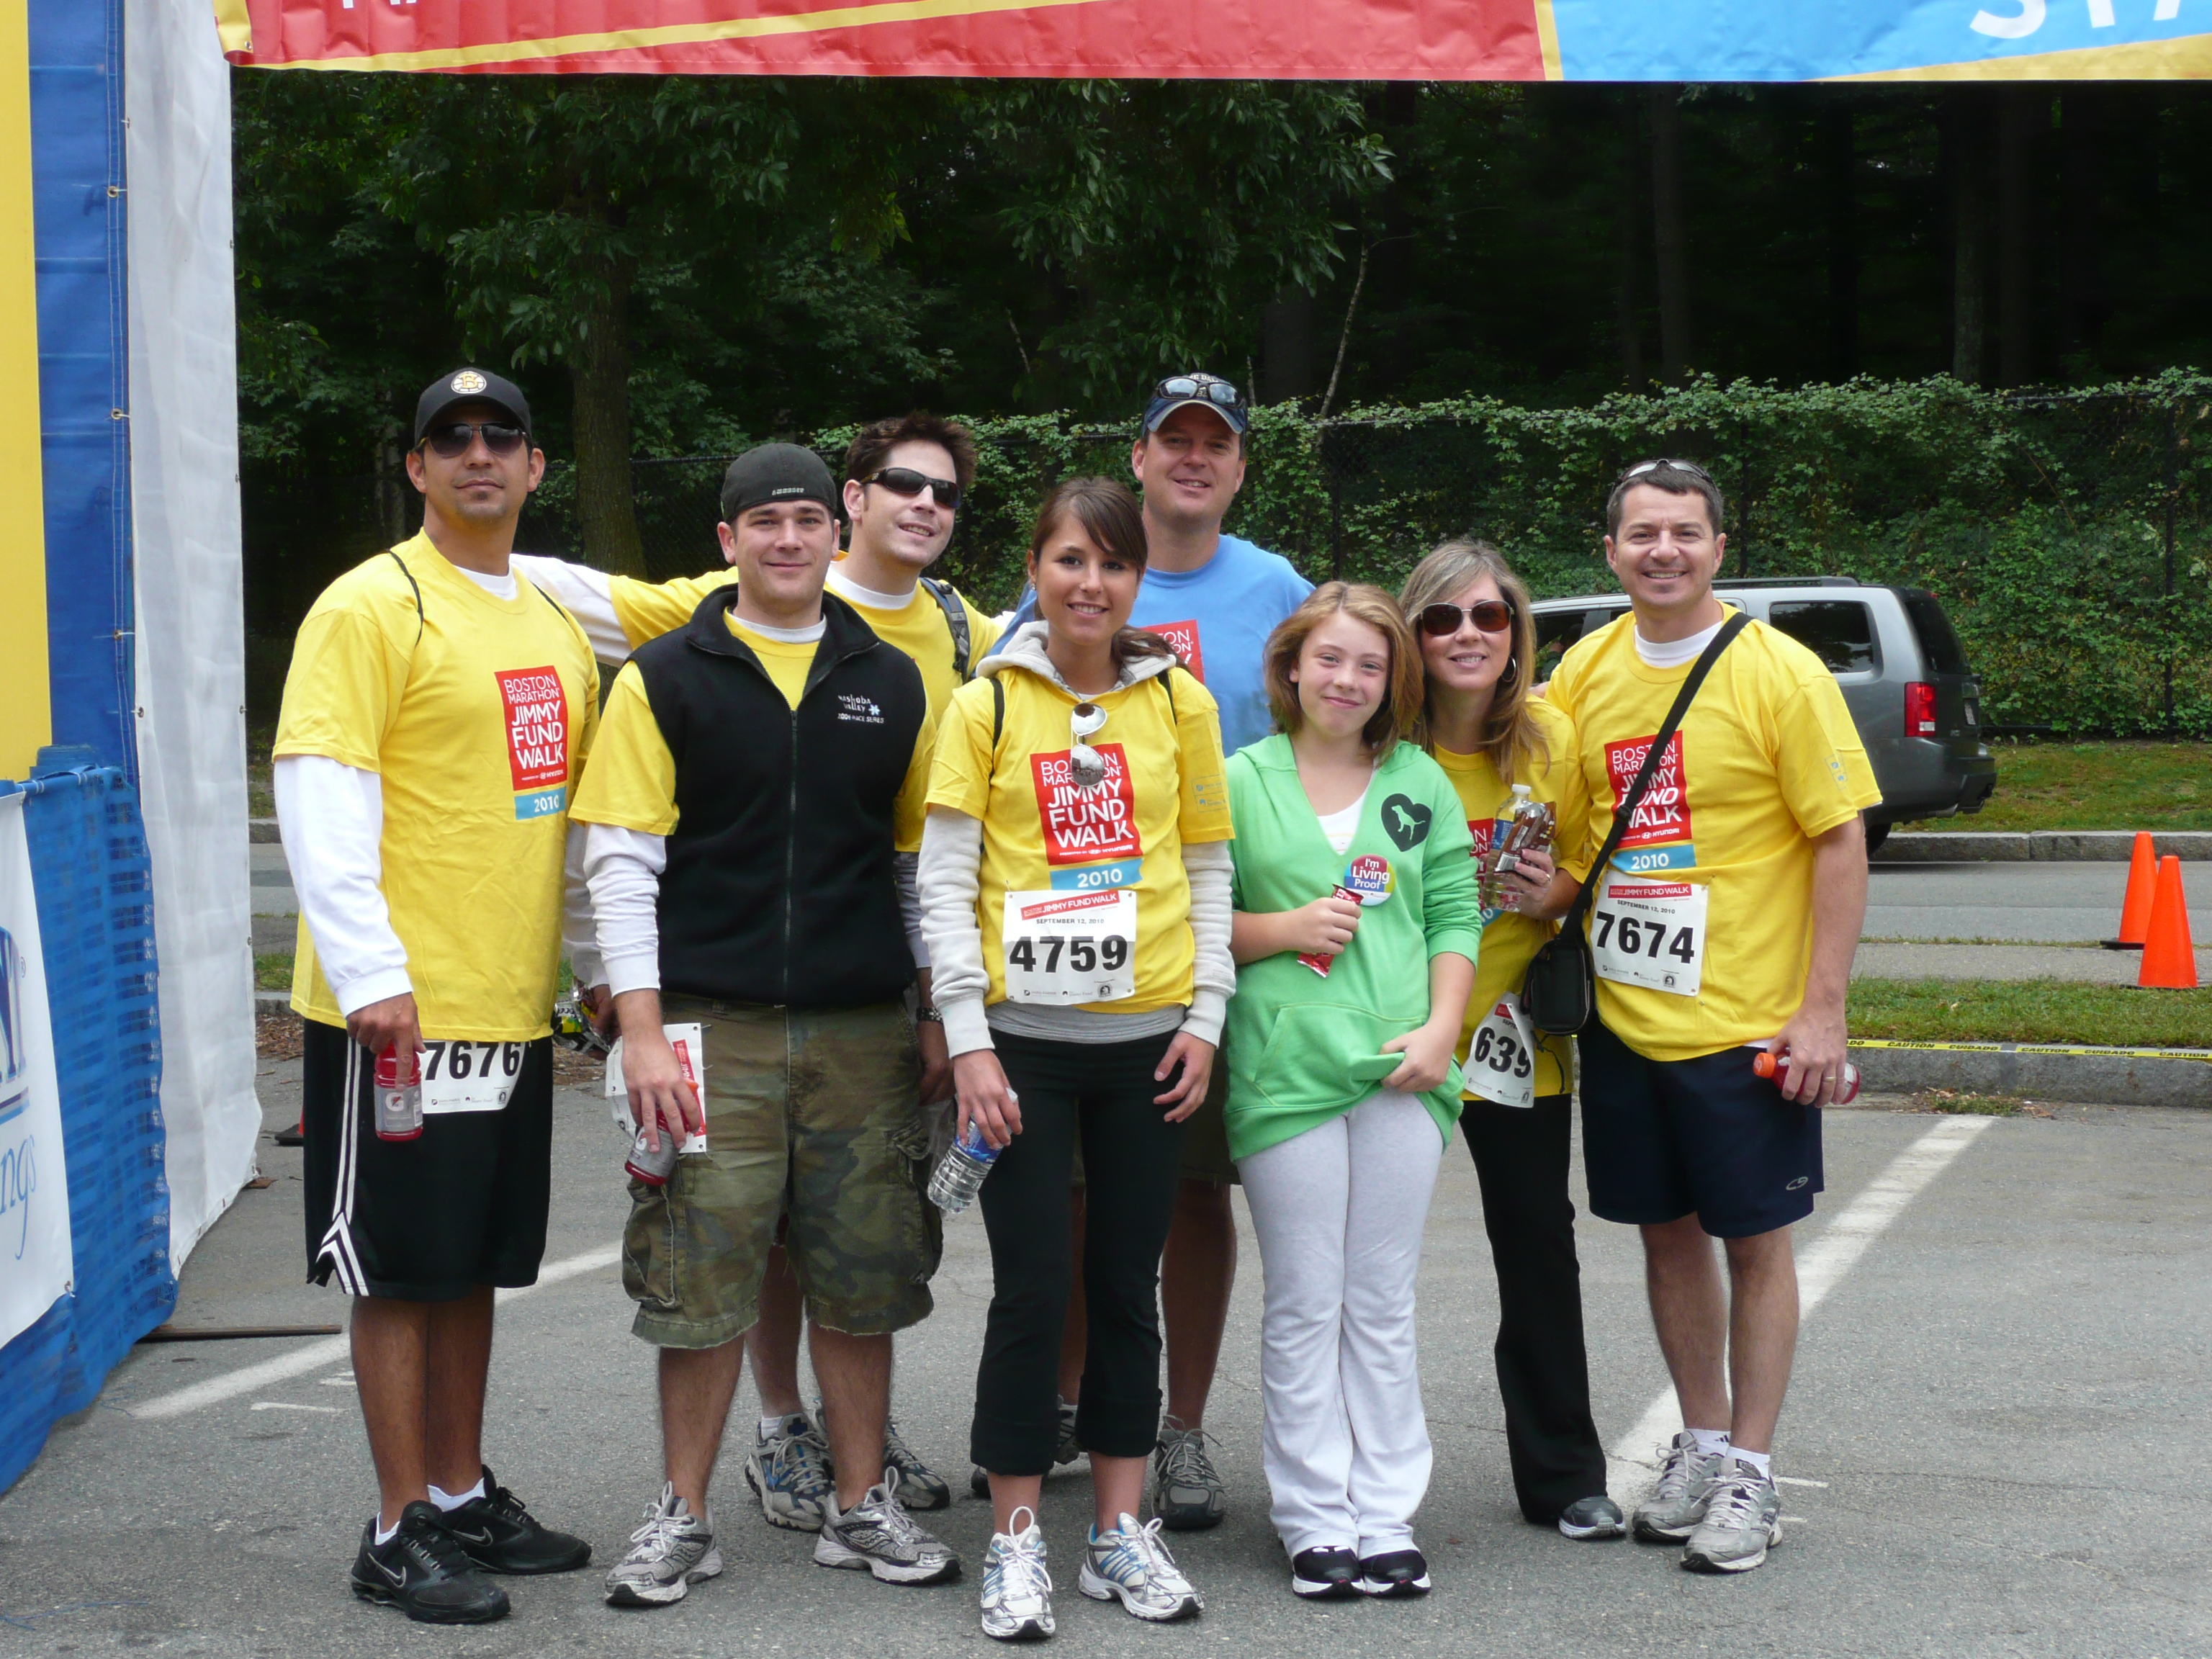 Treeline does the Boston Marathon Jimmy Fund Walk in 2010